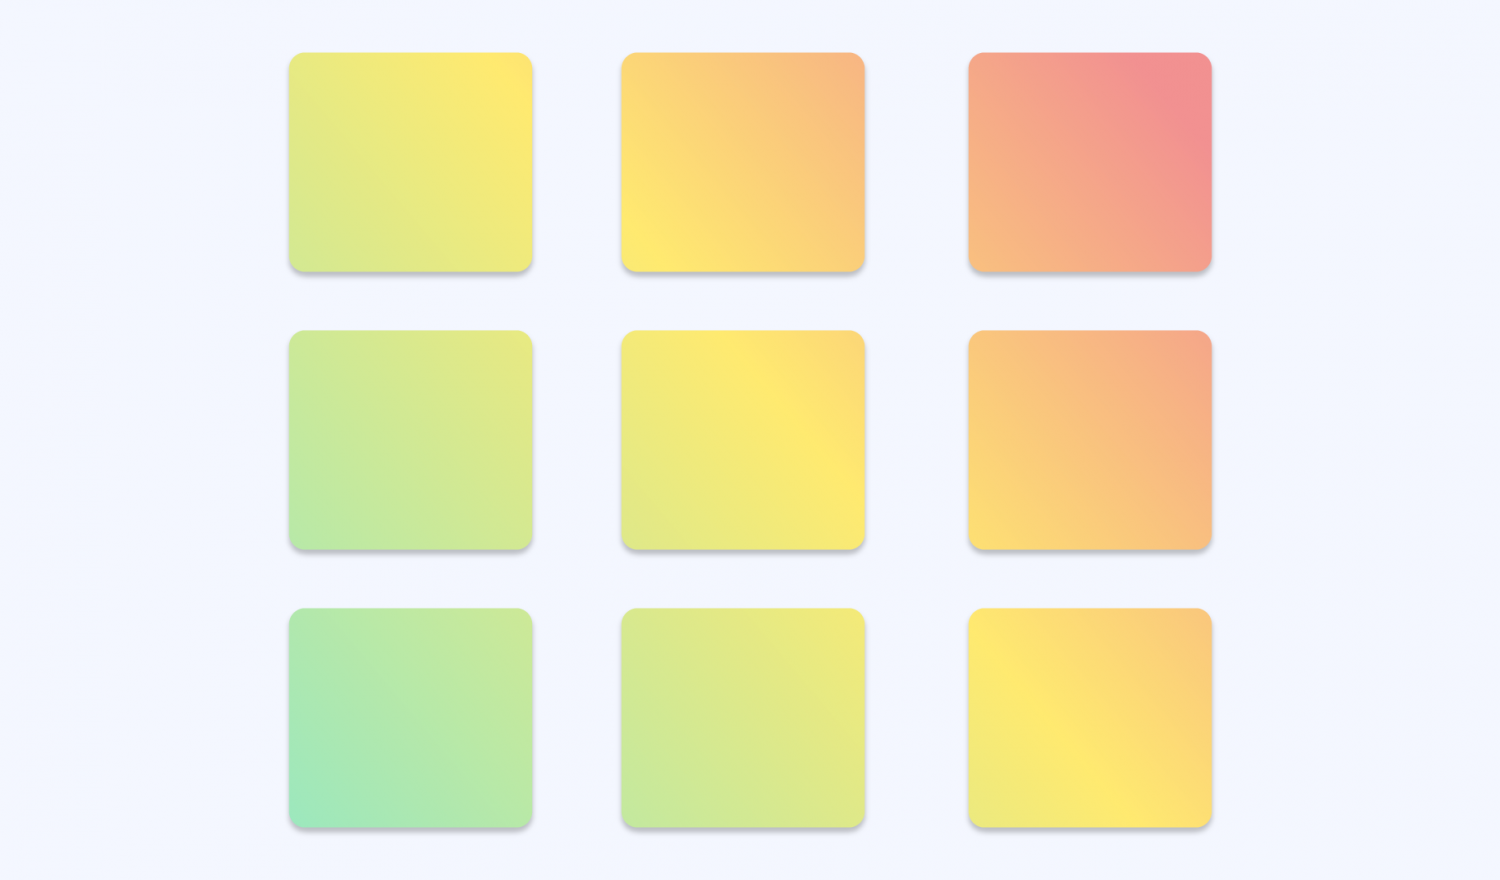 Sticky notes ranking from green to red